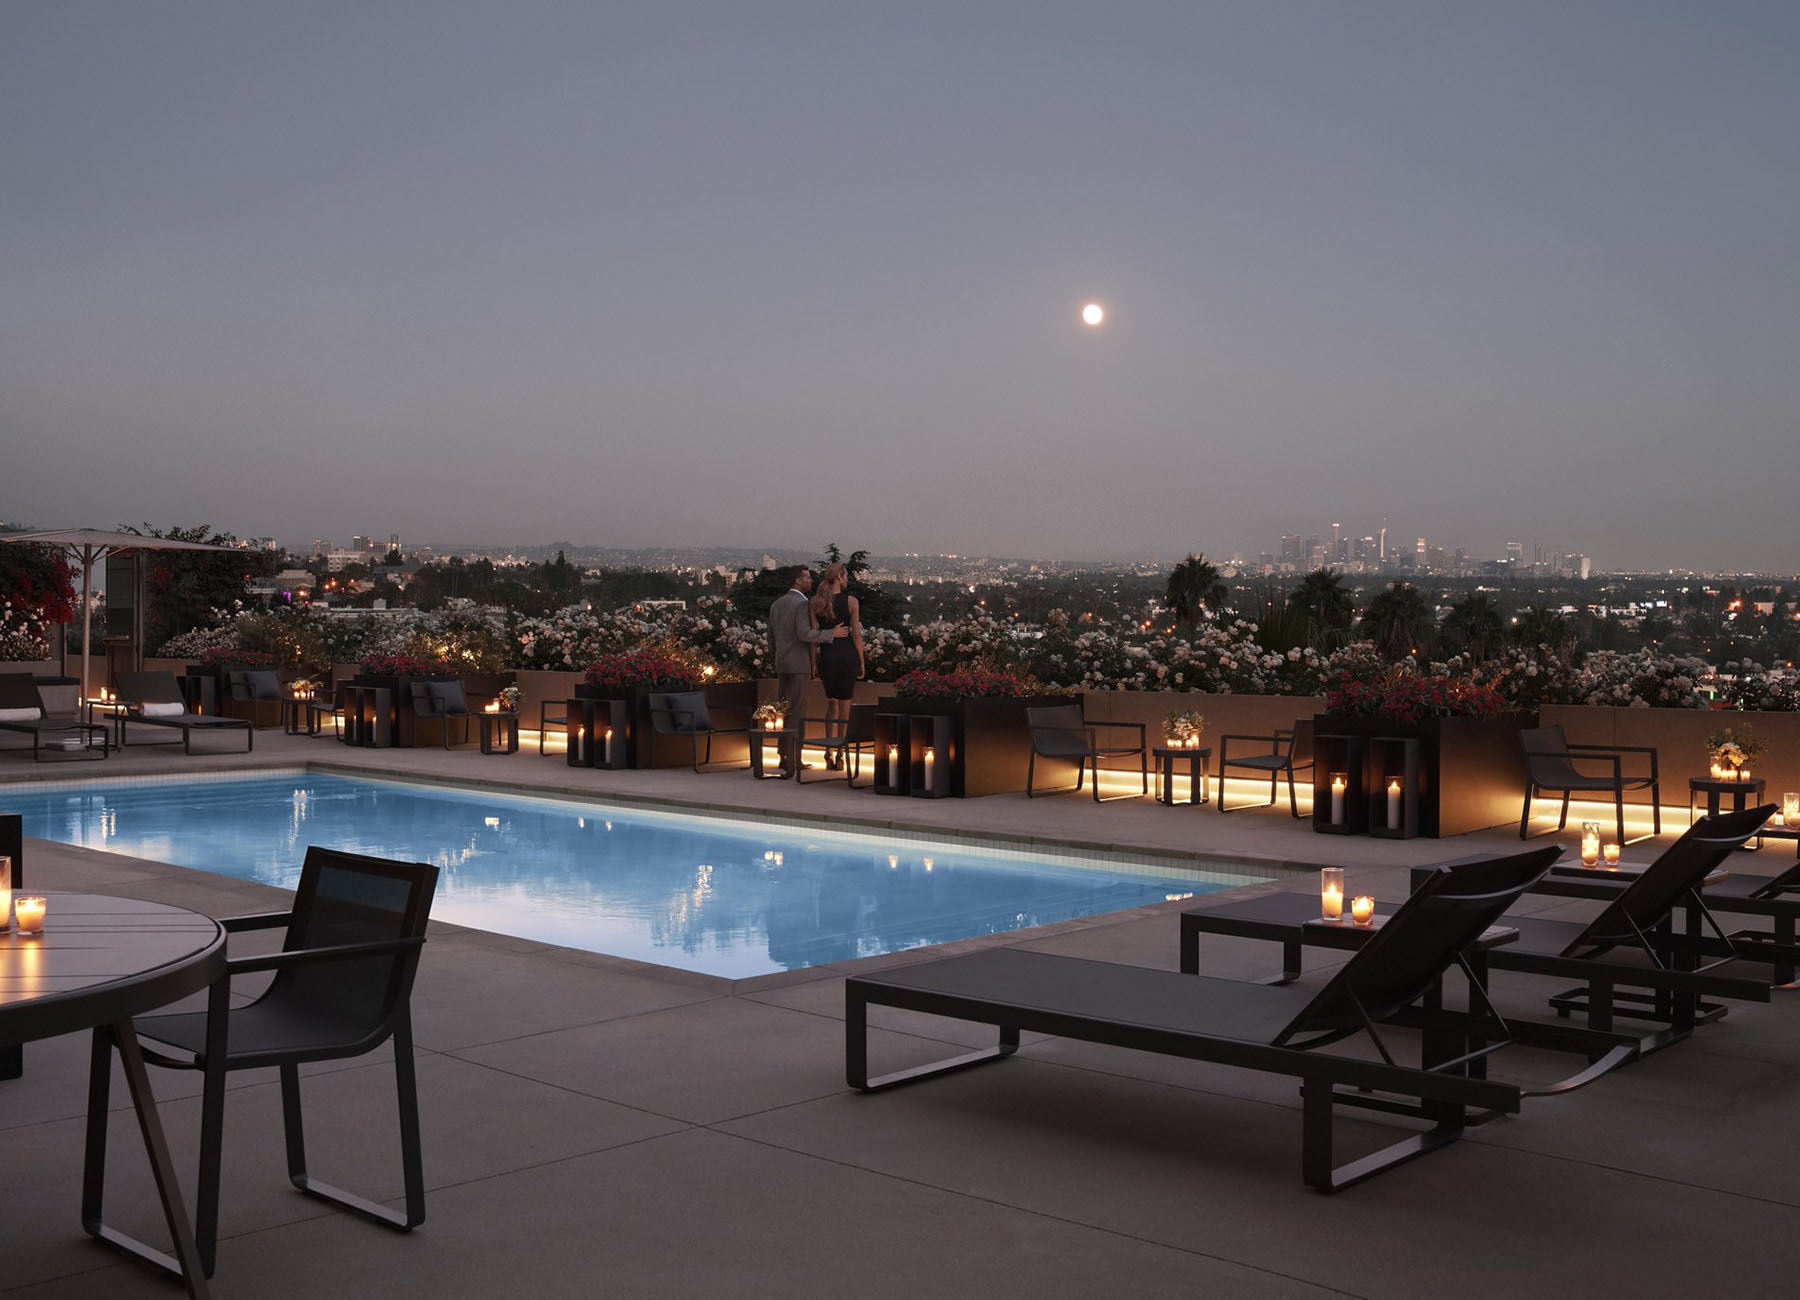 Rooftop lounge with pool and bar